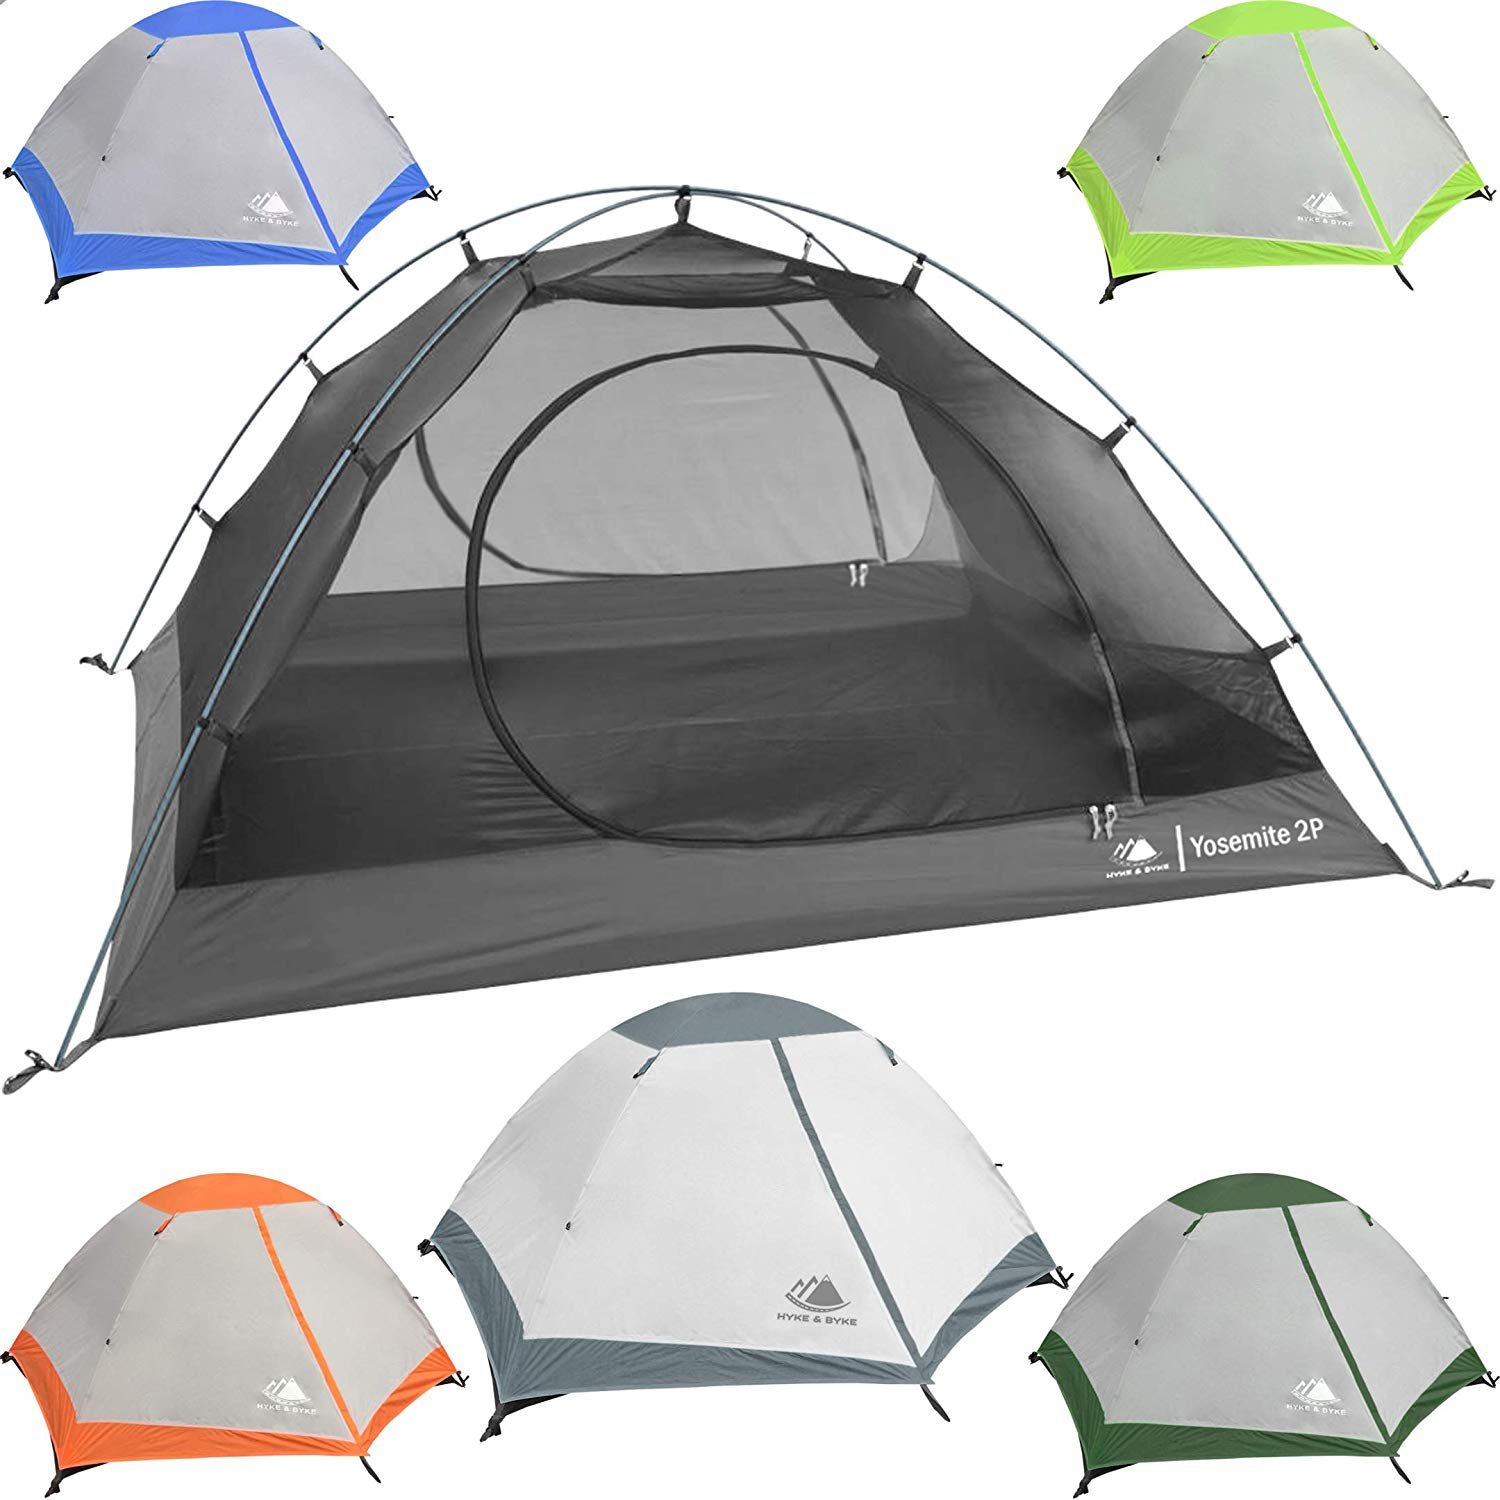 The Best Backpacking Tent Under $100 - The Backpacking Site